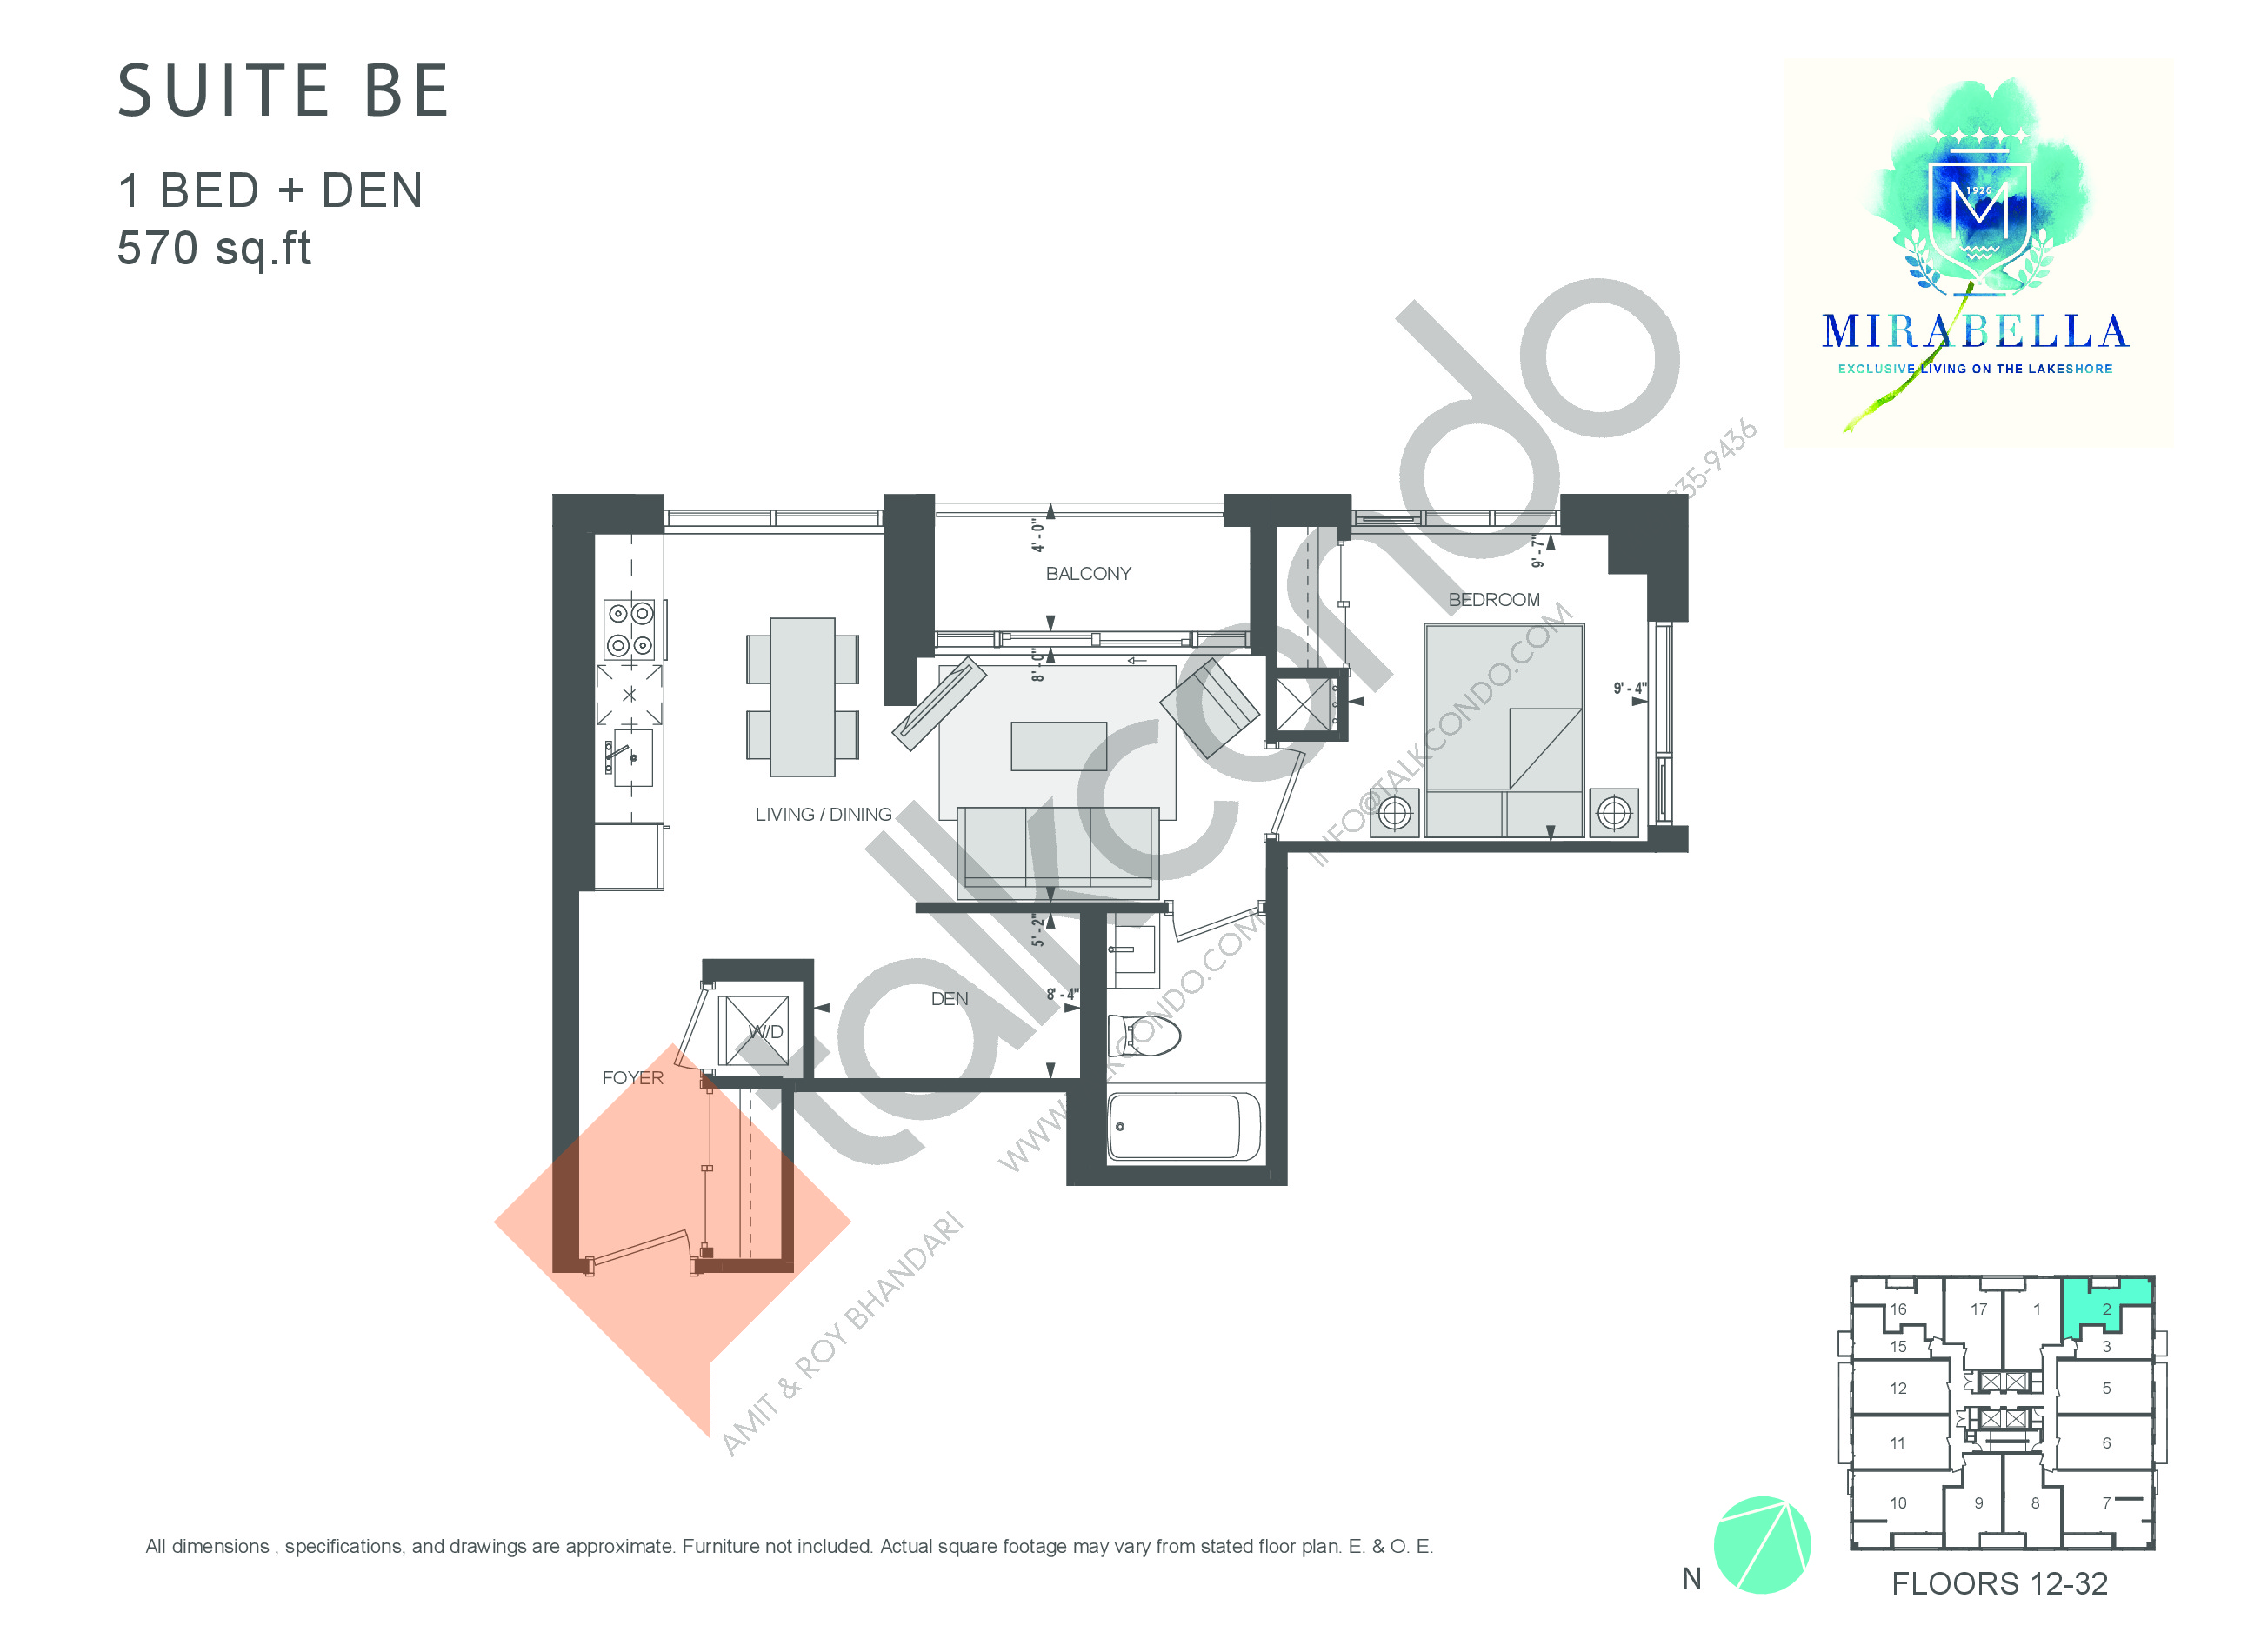 Suite BE Floor Plan at Mirabella Luxury Condos East Tower - 570 sq.ft